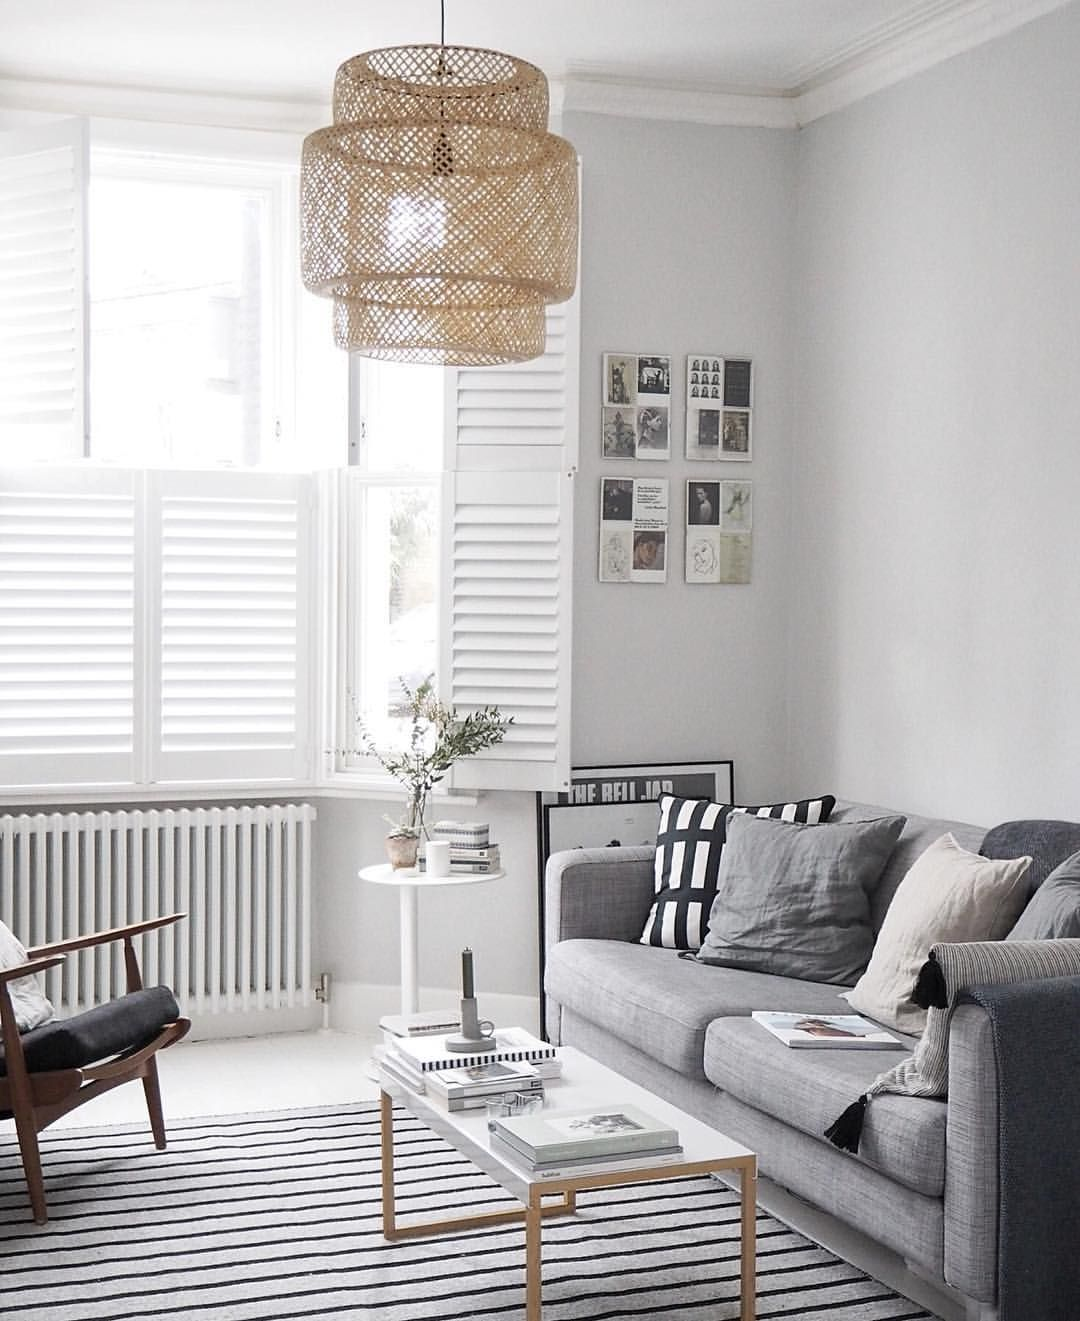 lovely light airy living room with soft grey tones and an